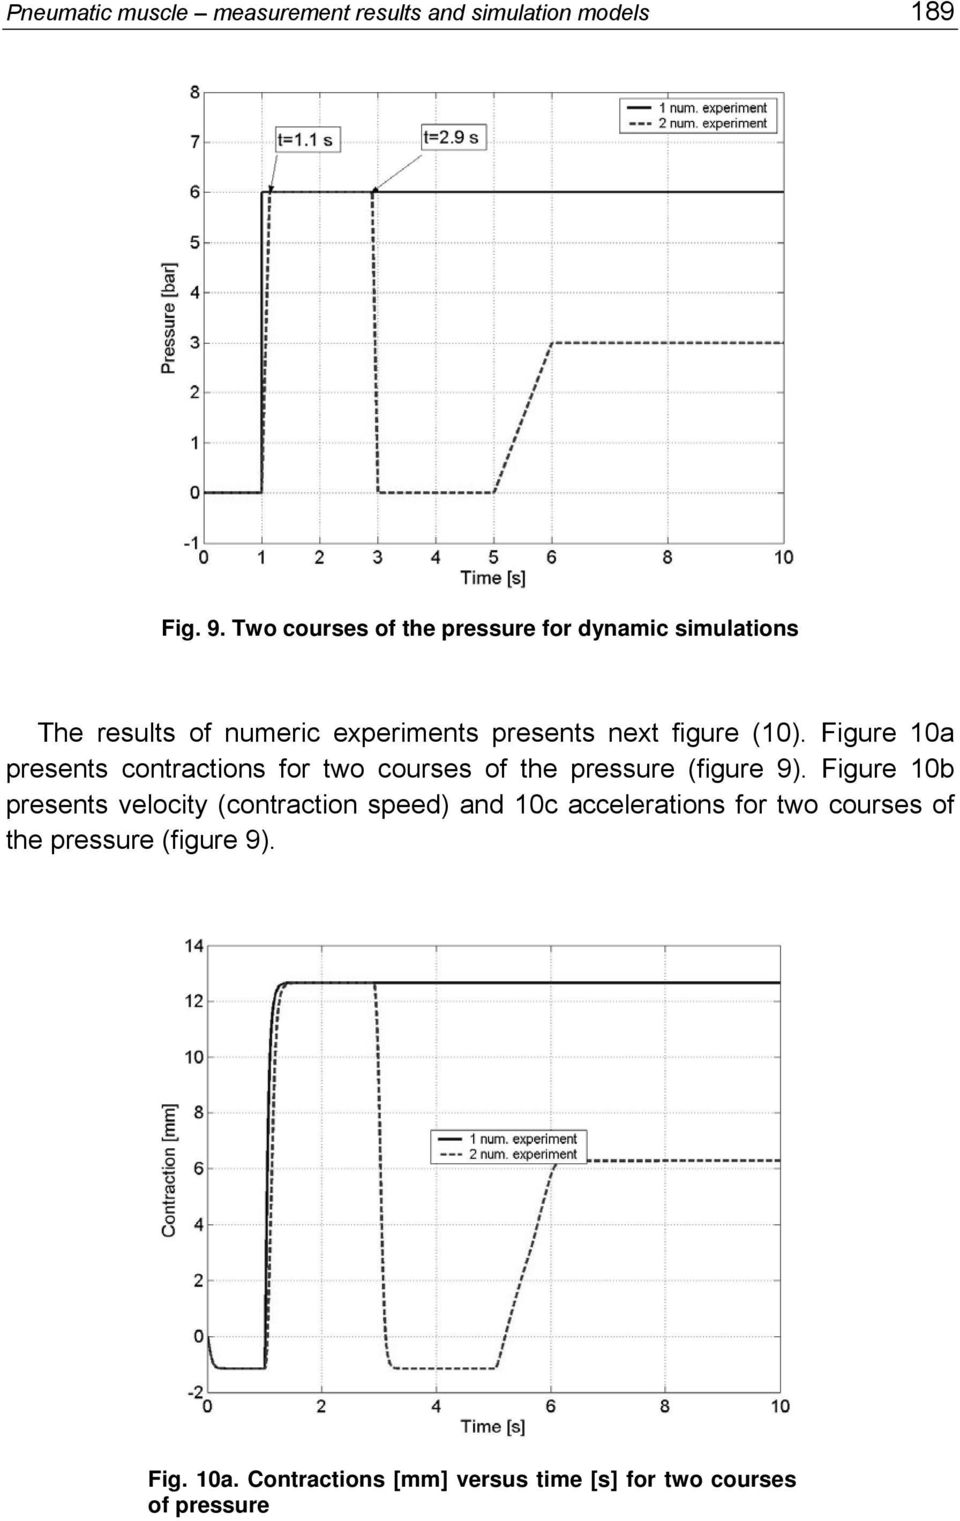 (10). Figure 10a presents contractions for two courses of the pressure (figure 9).